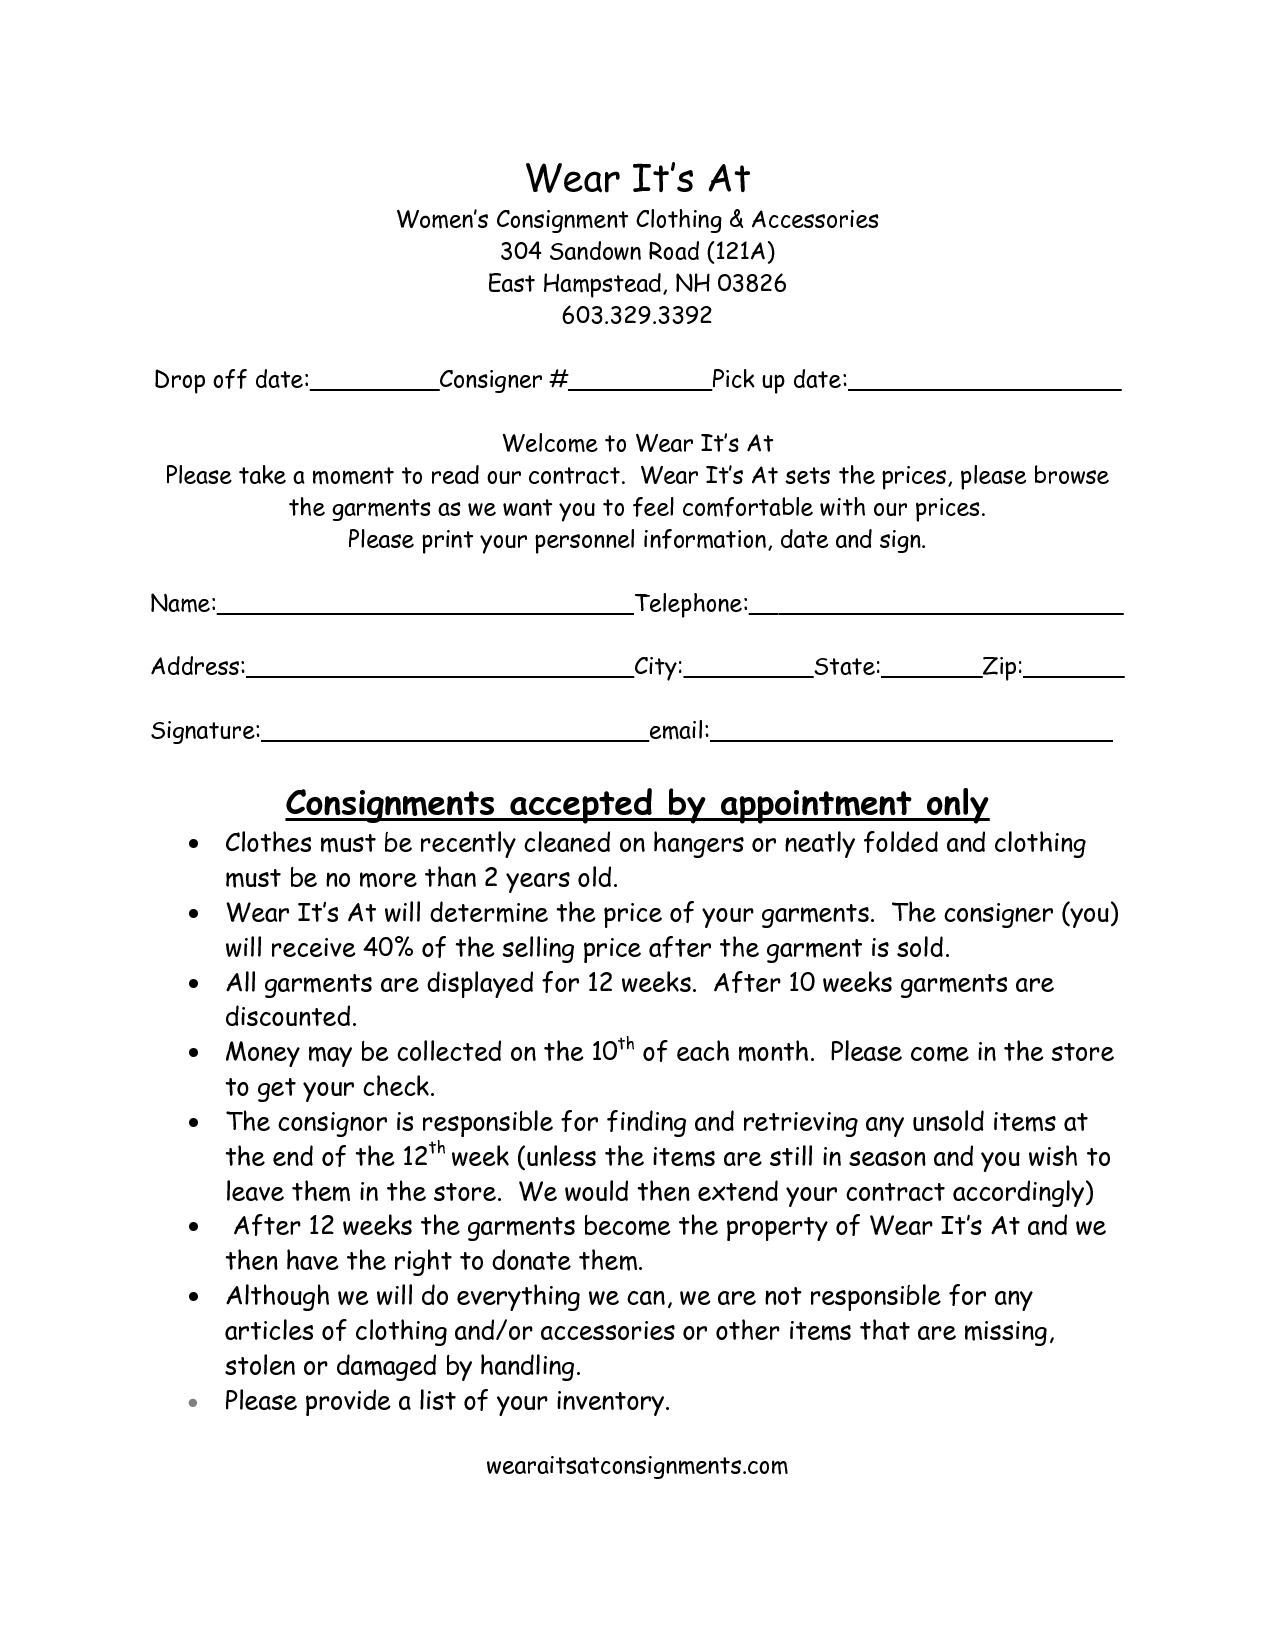 consignment shop contract template clothing consignment contract template scope of work